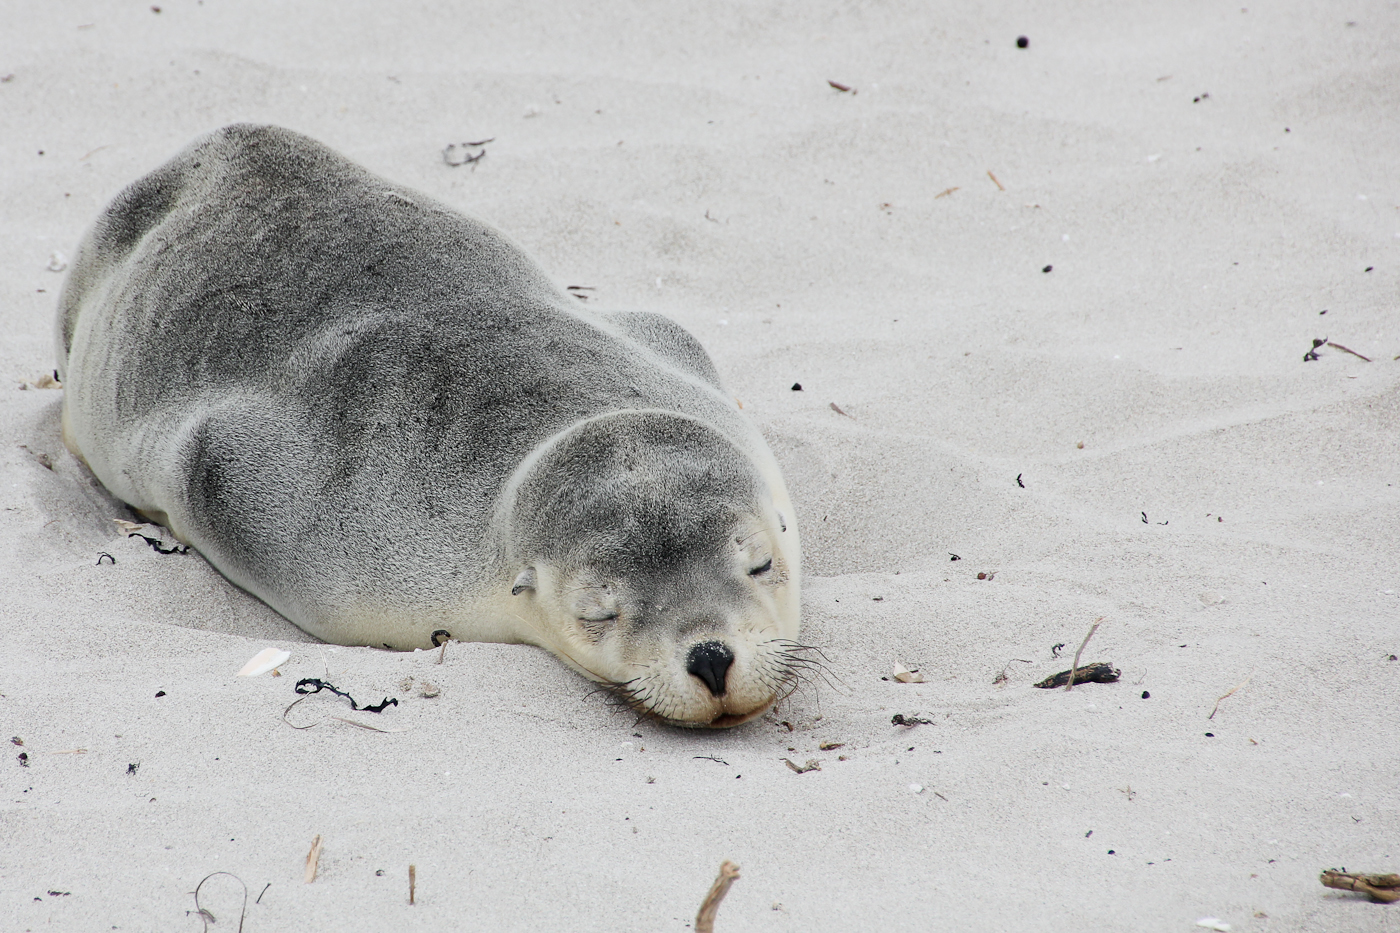 After days of fishing out at sea, this seal sleep it off.